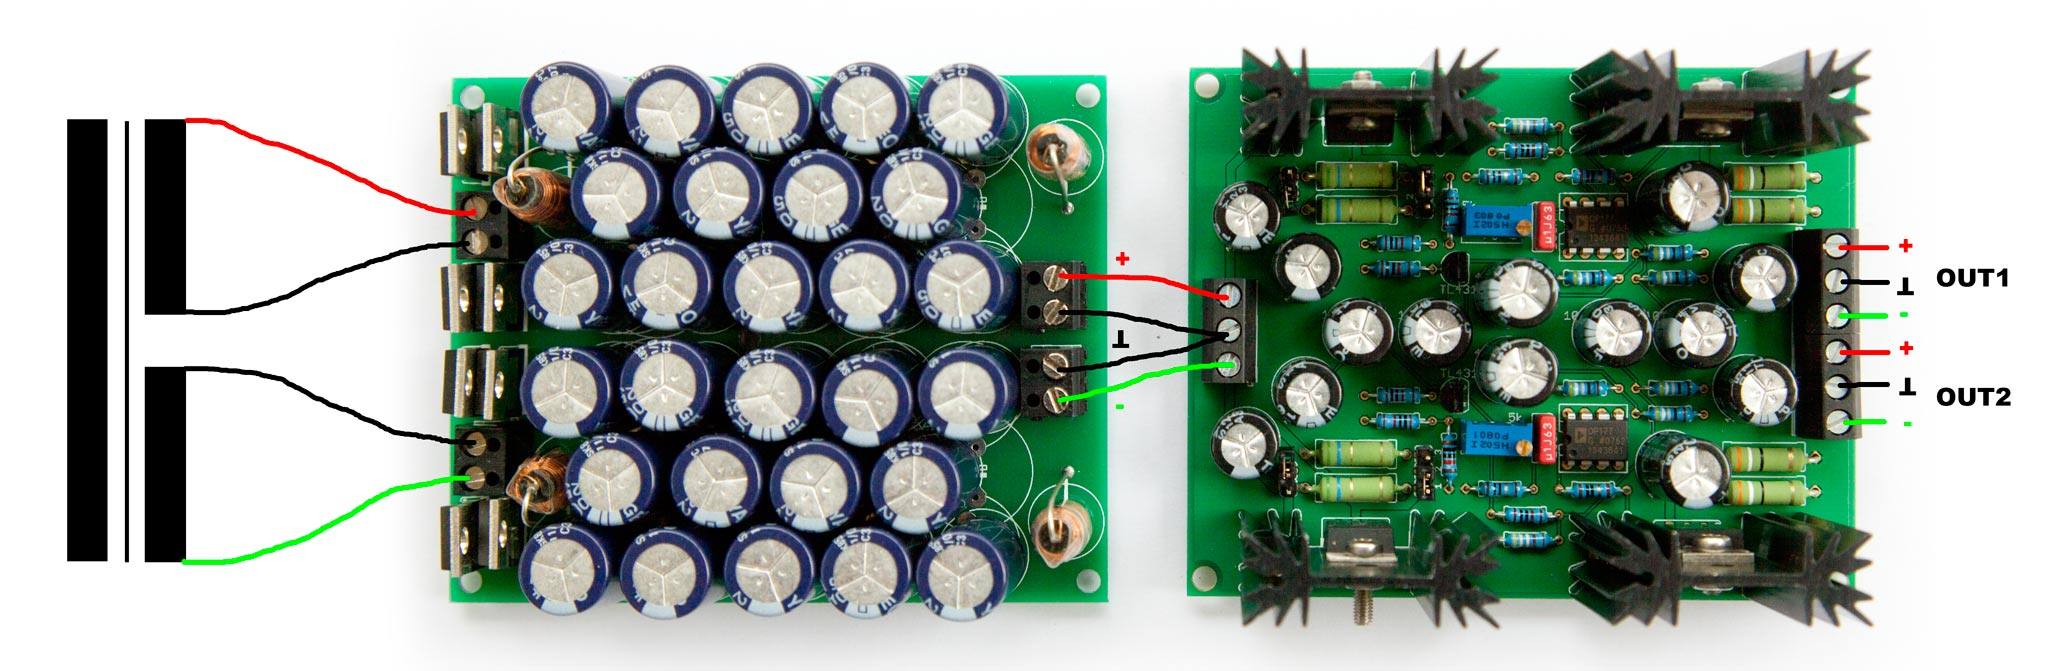 Unisieb Shunt Regulator Cabling Crazy Audio All You Need To Know About Basic Power Supply Circuit